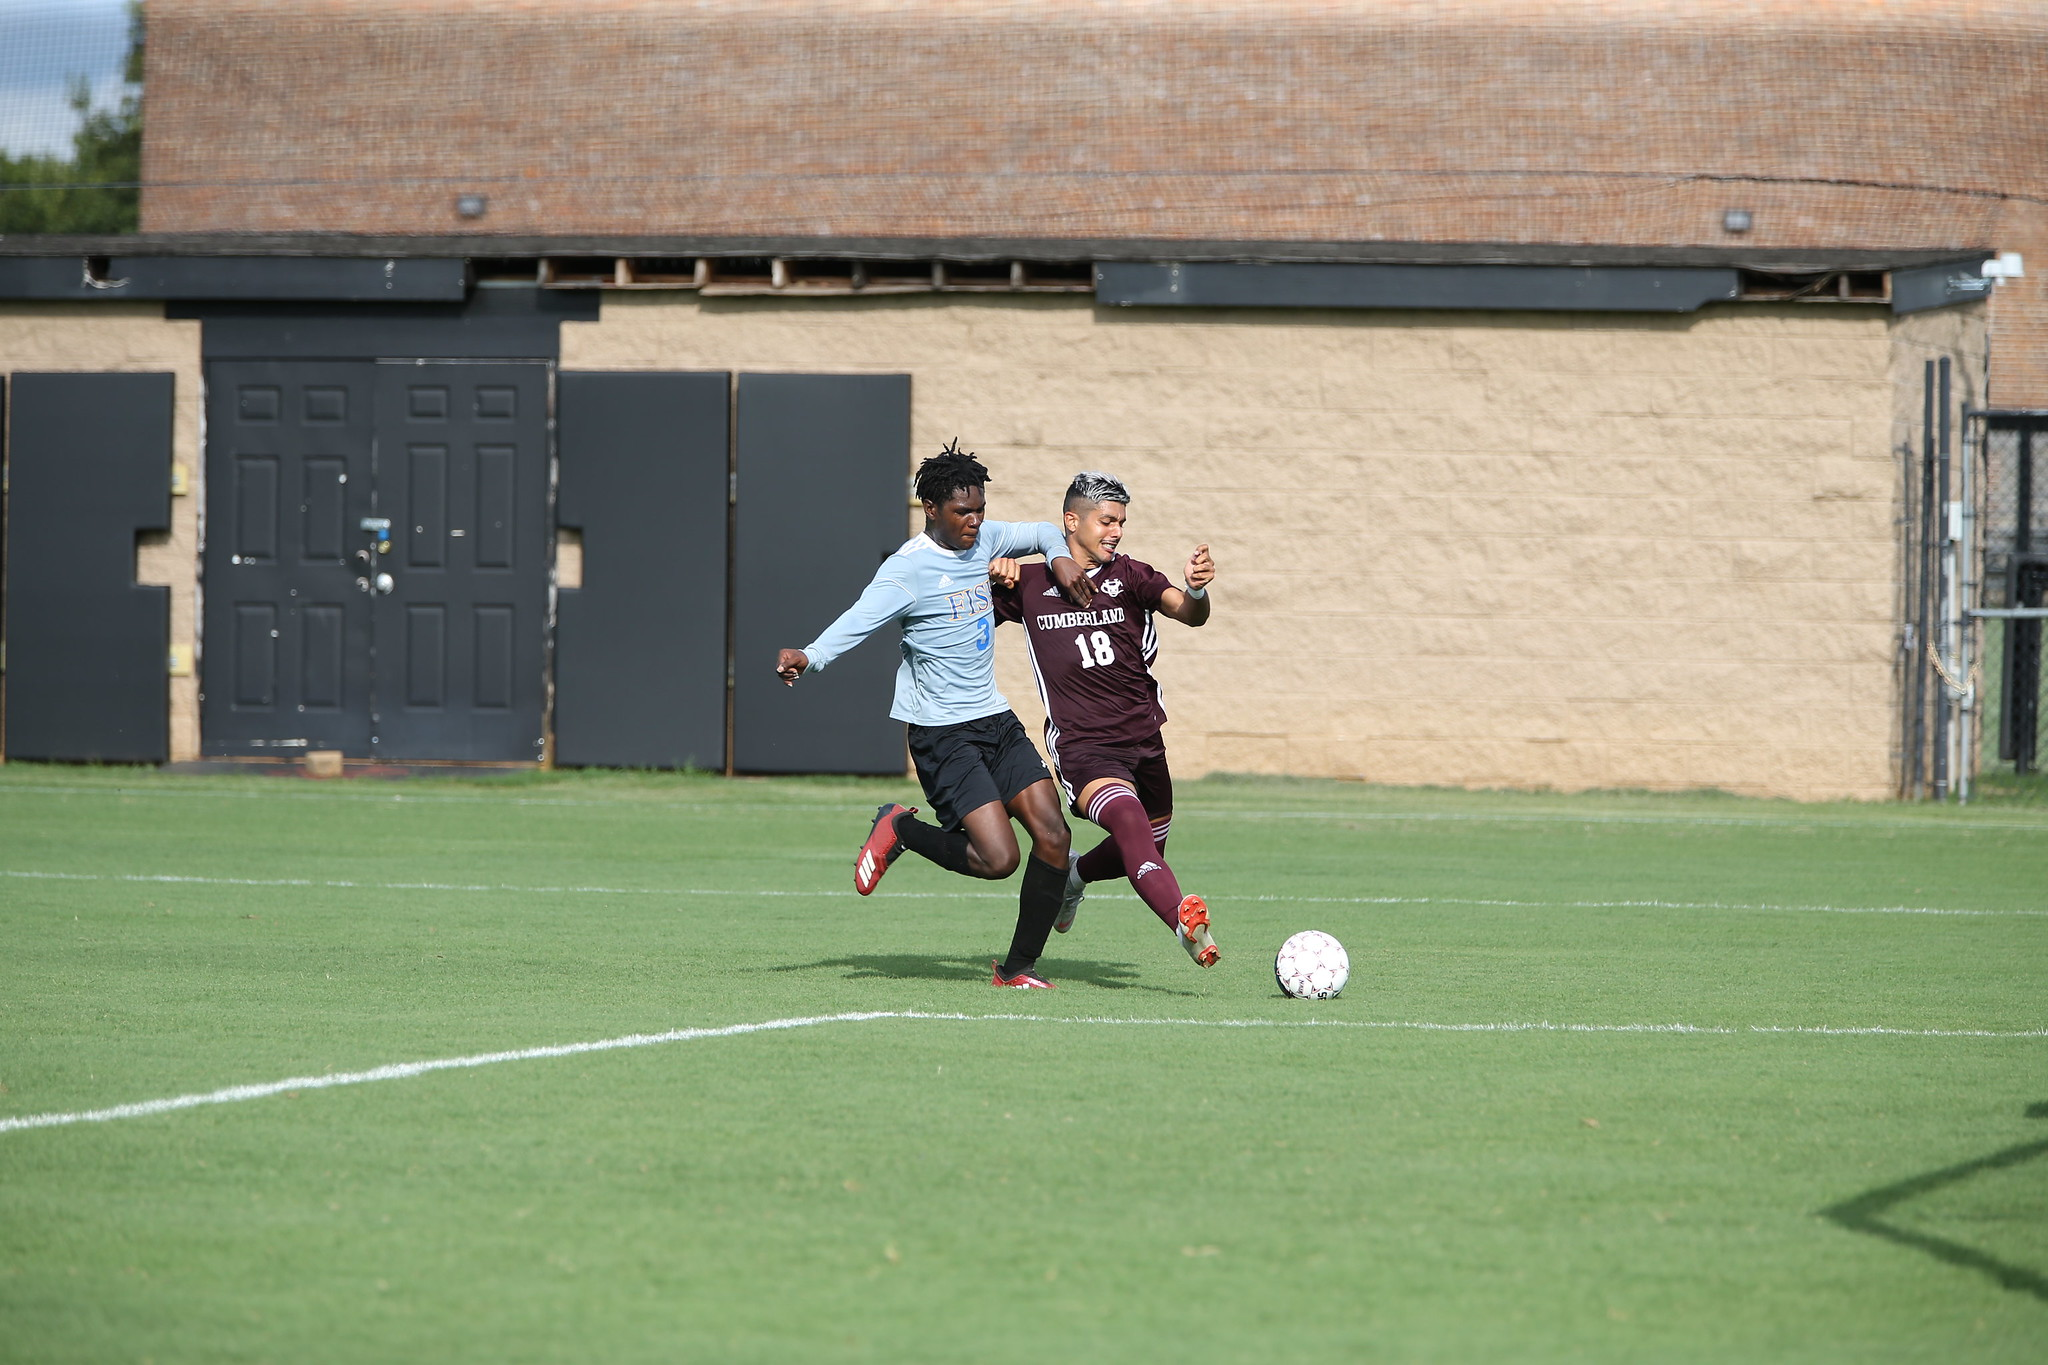 Pair of goals by Pugh leads Tigers over Phoenix